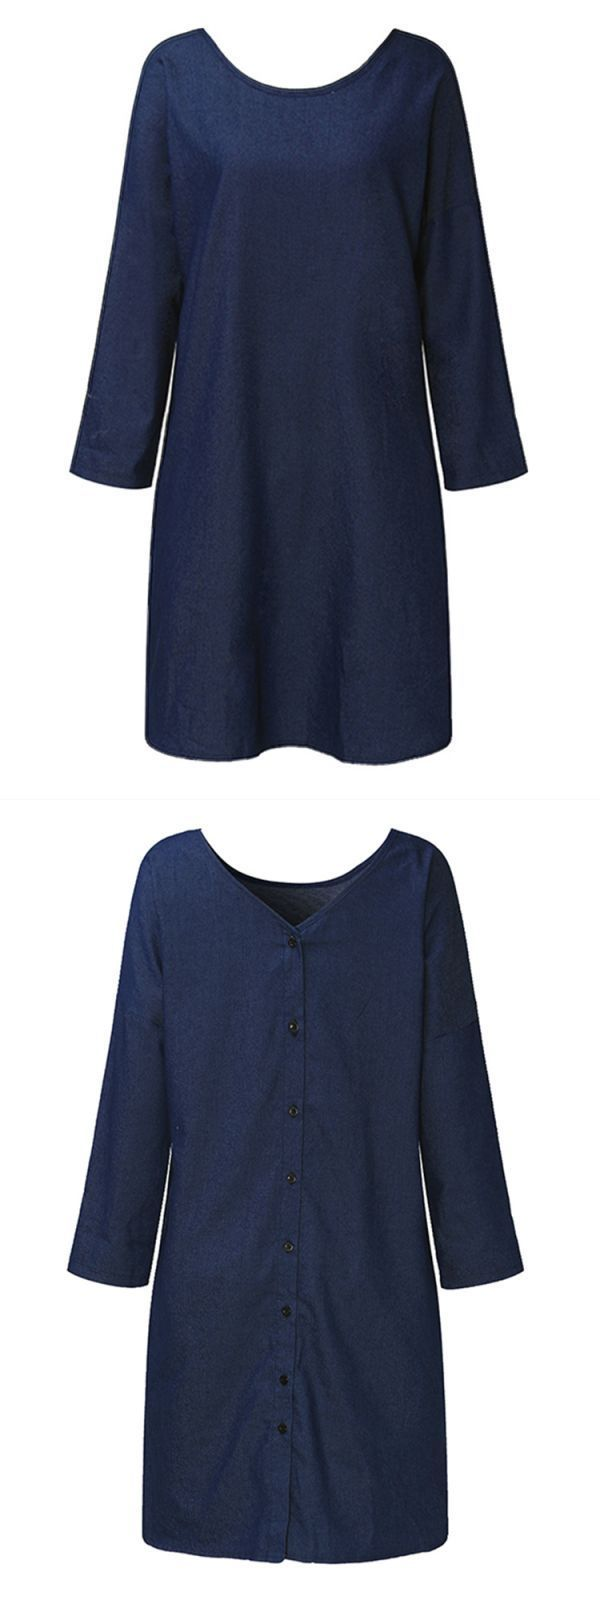 Casual women loose button backless blue denin dresses casual t shirt dresses uk #a #casual #dress #definition #casual #dresses #ebay #casual #dresses #size #18 #casual #dresses #under #50